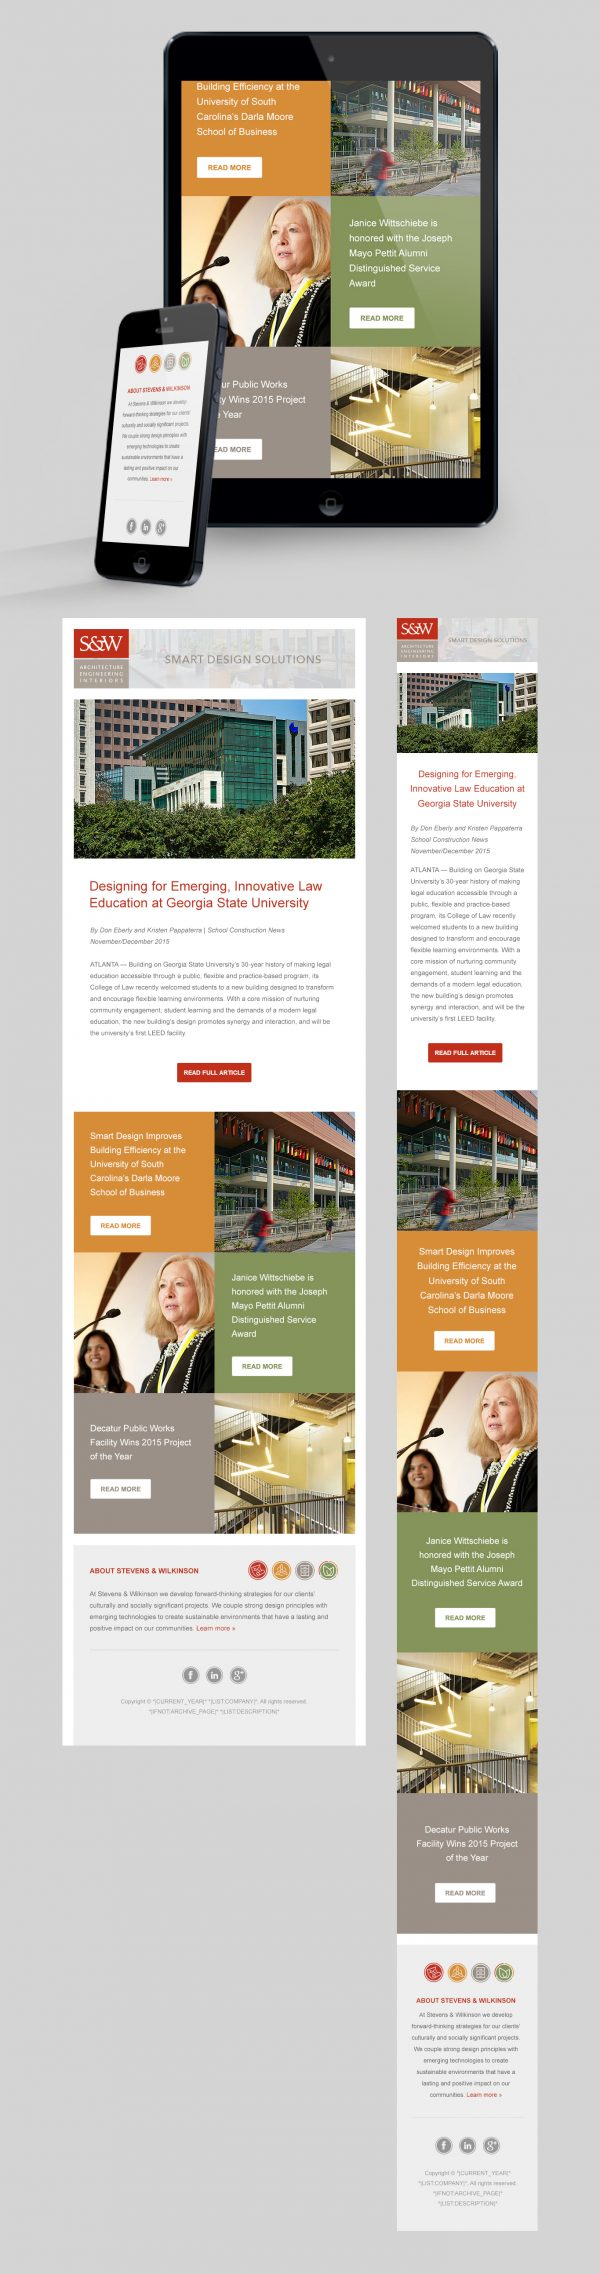 Stevens & Wilkinson HTML email design and development